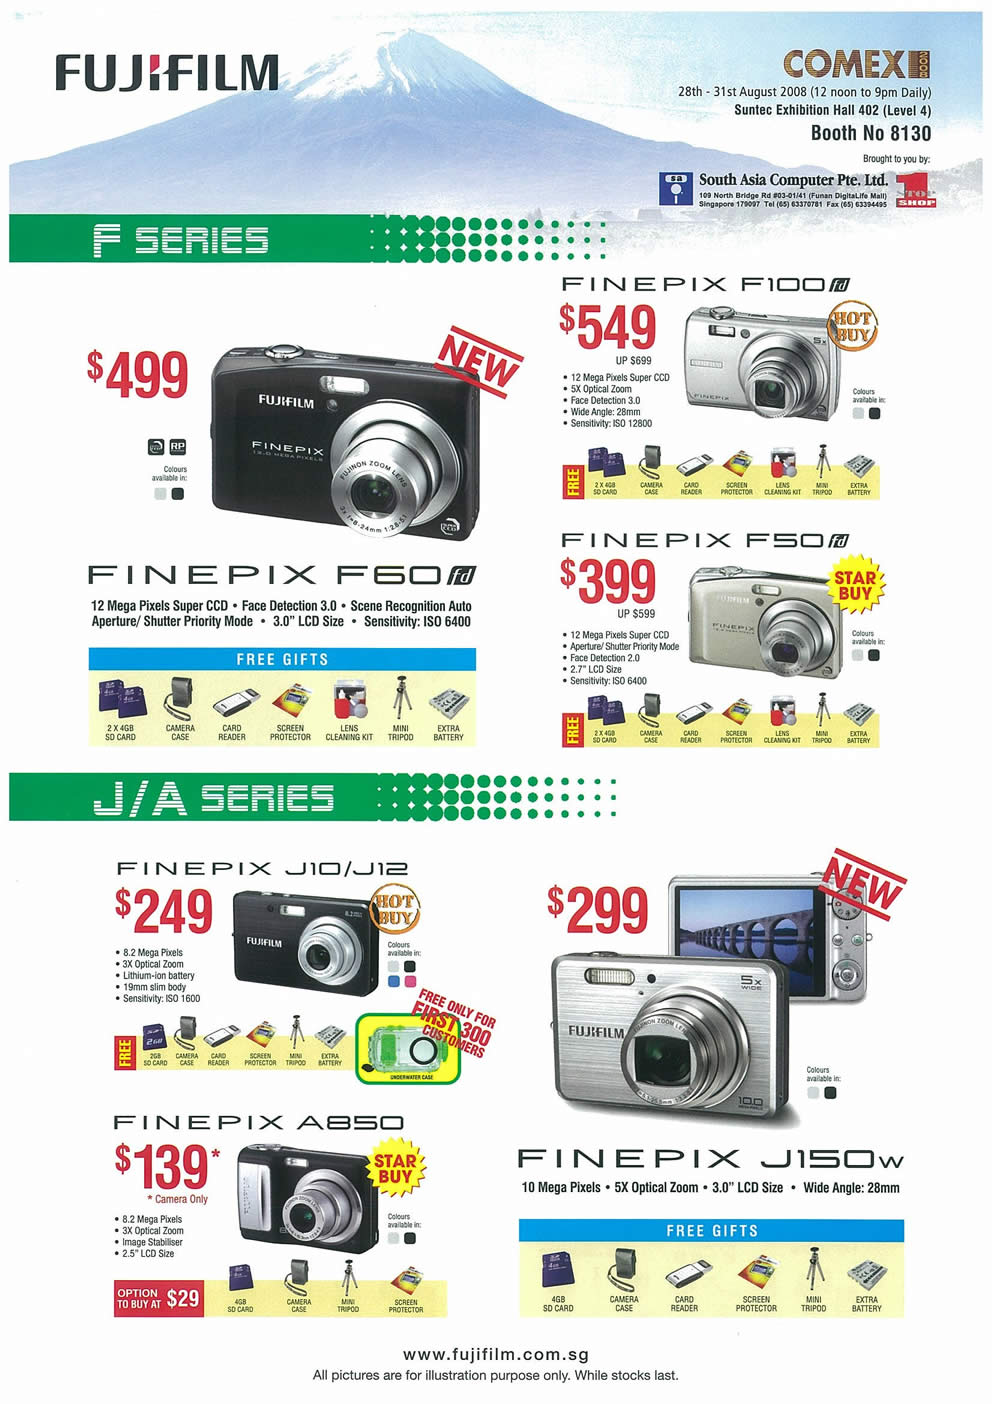 Comex 2008 price list image brochure of FujiFilm FinePix Cameras Page 2